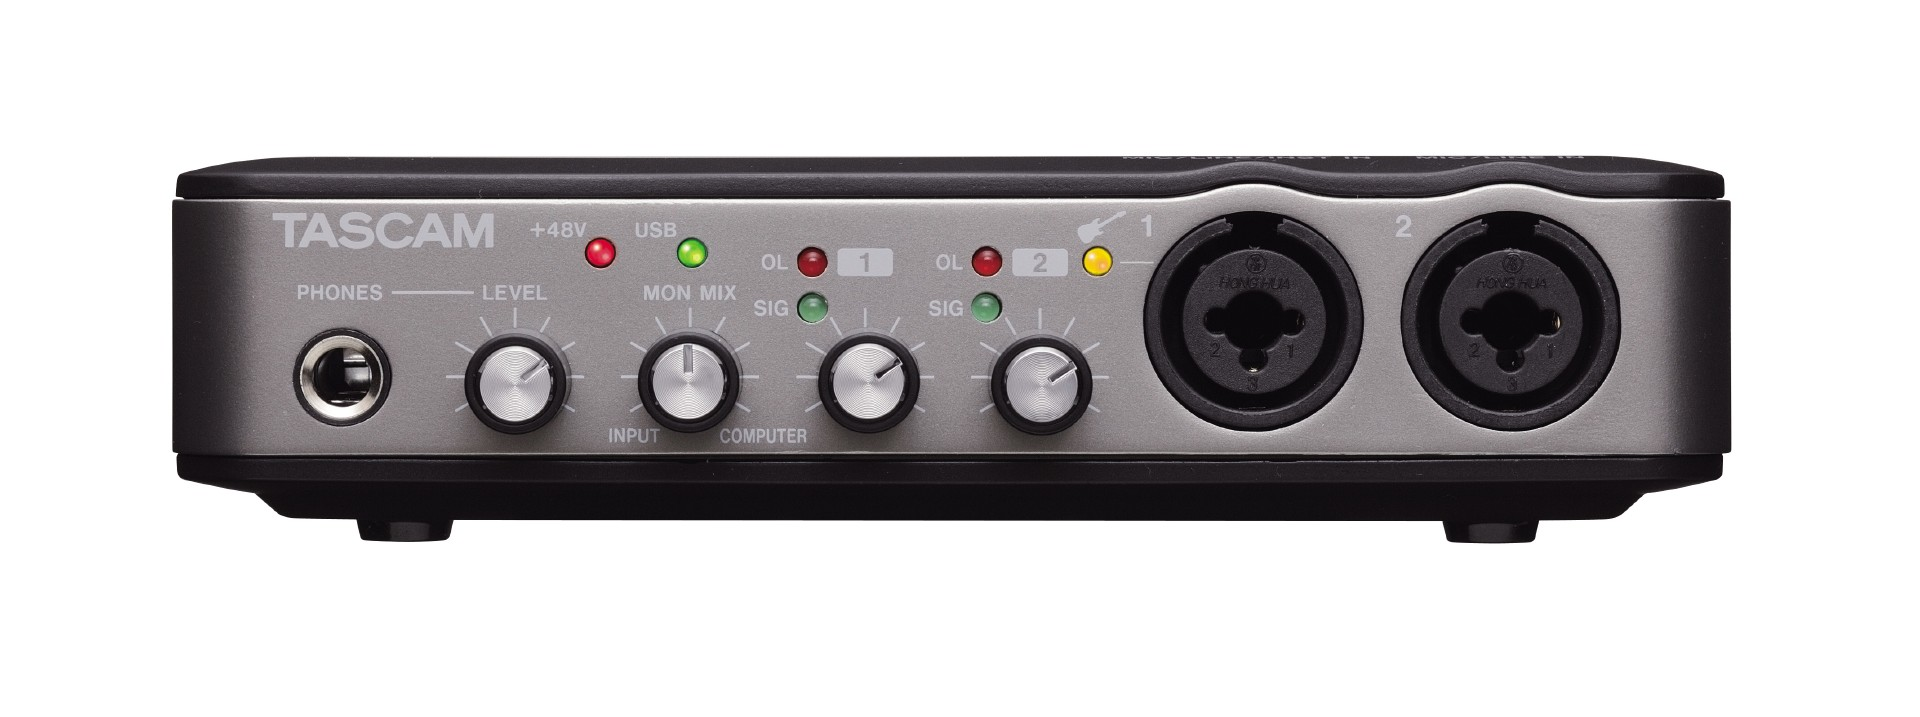 US-200   FEATURES   TASCAM - United States